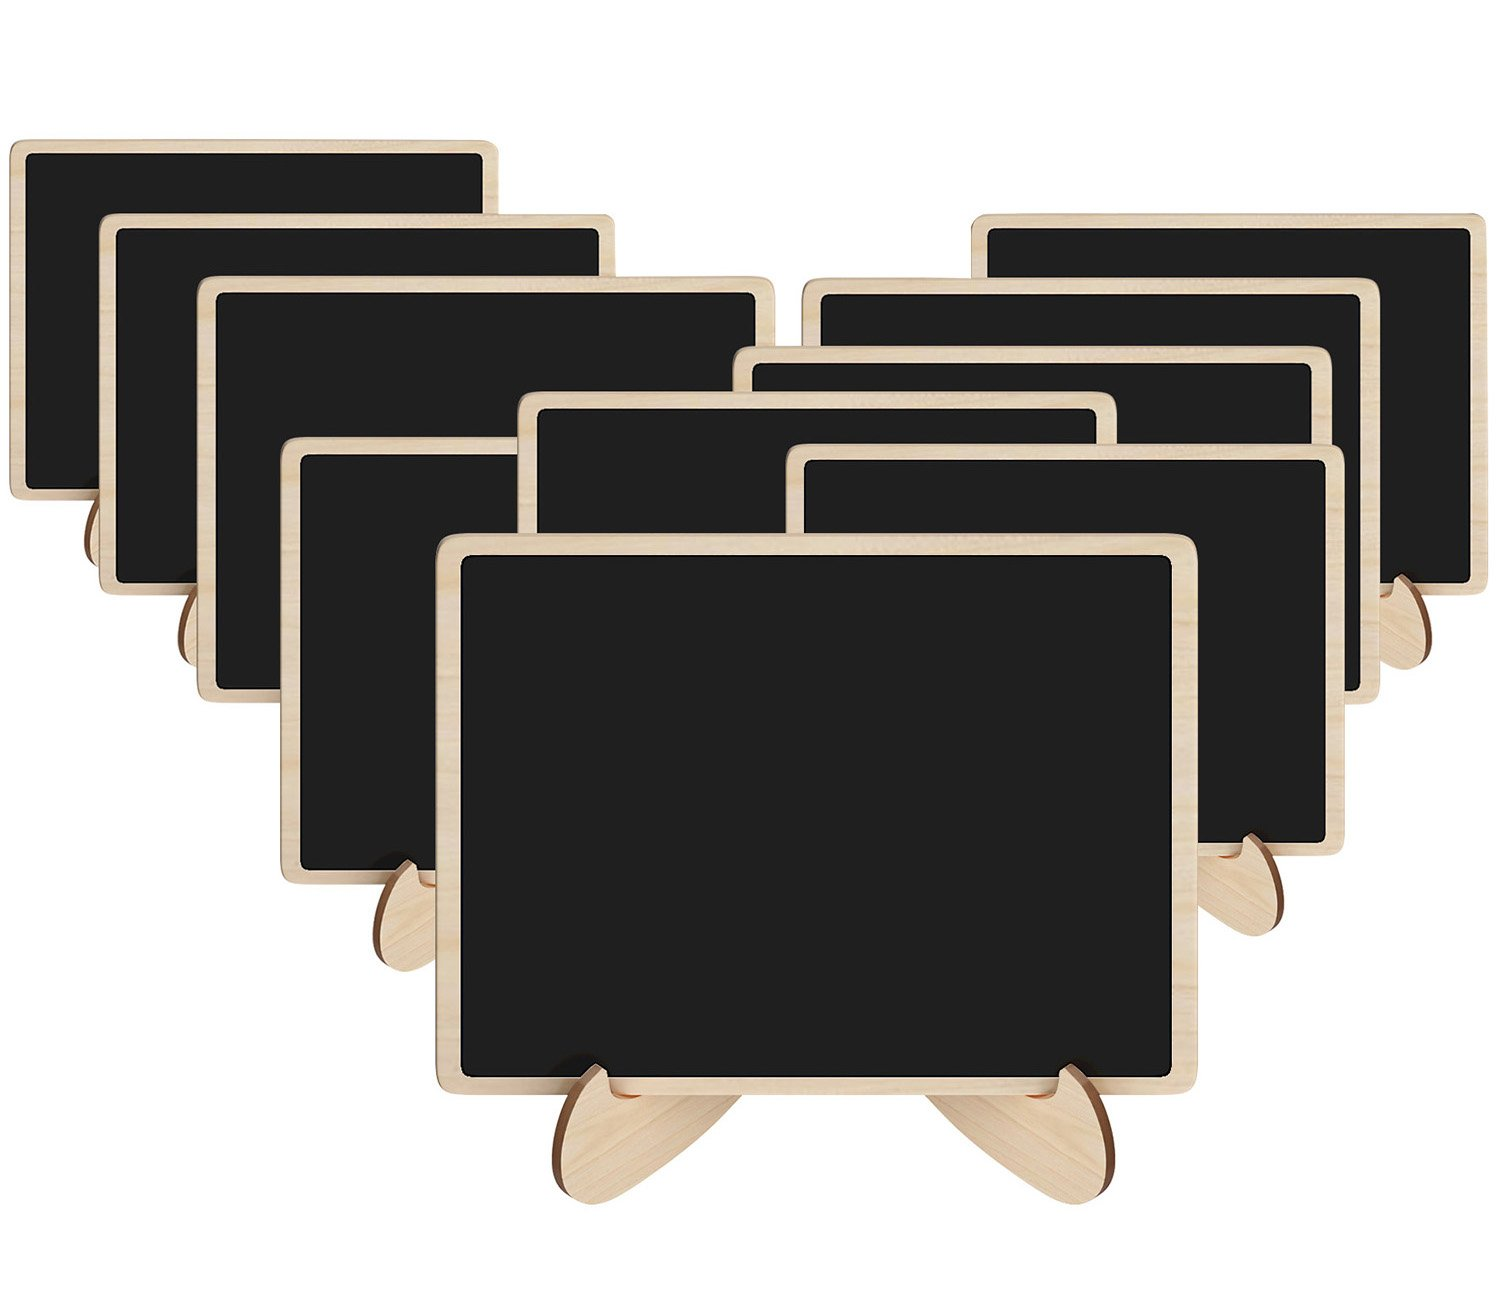 Leyaron 10 Pack Mini Chalkboards Place Cards with Easel Stand - Wood Rectangle Small Chalkboard Signs for Wedding, Birthday Parties, Table Numbers, Food Signs and Special Event Decoration (10 pack) LST-031-2